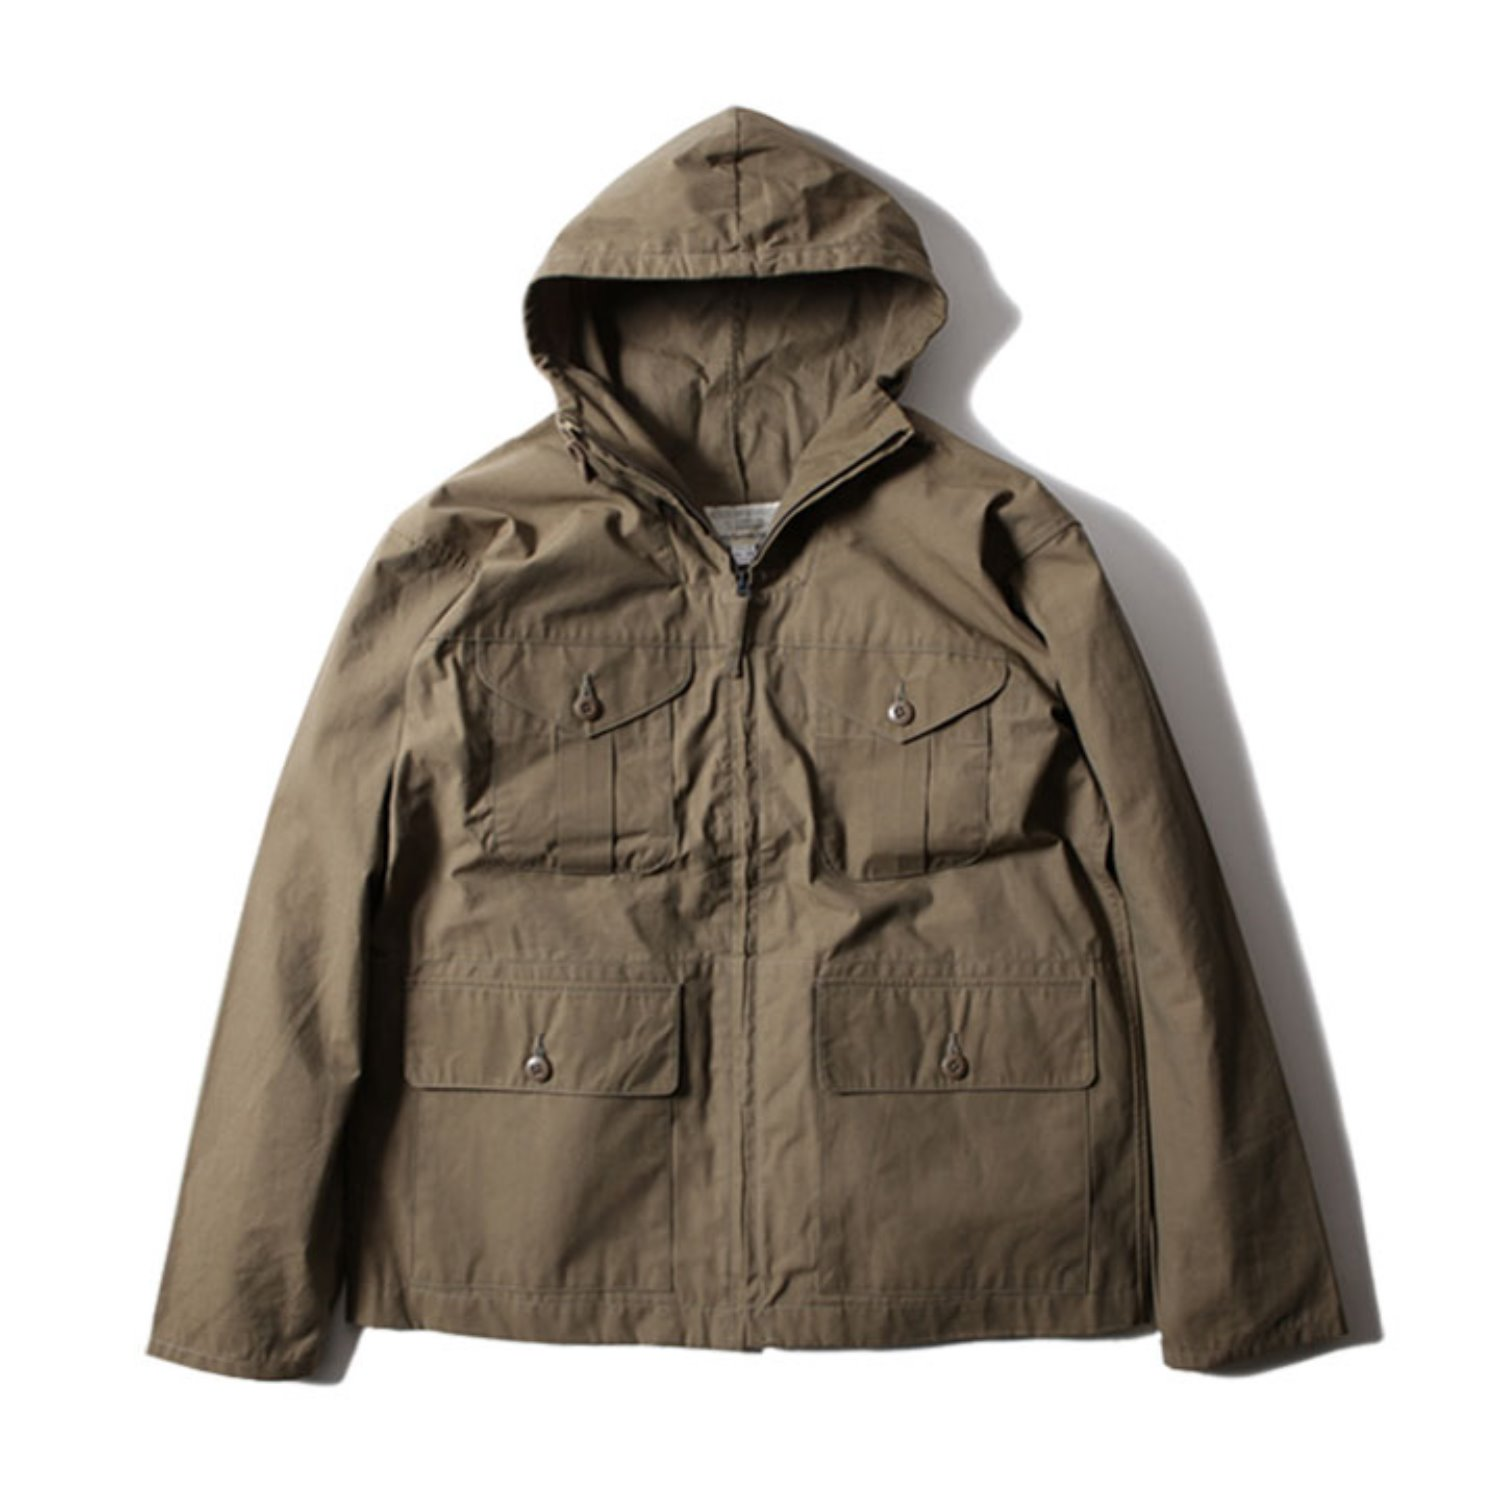 Trophy Cltothing Field Hood Jacket (Olive)